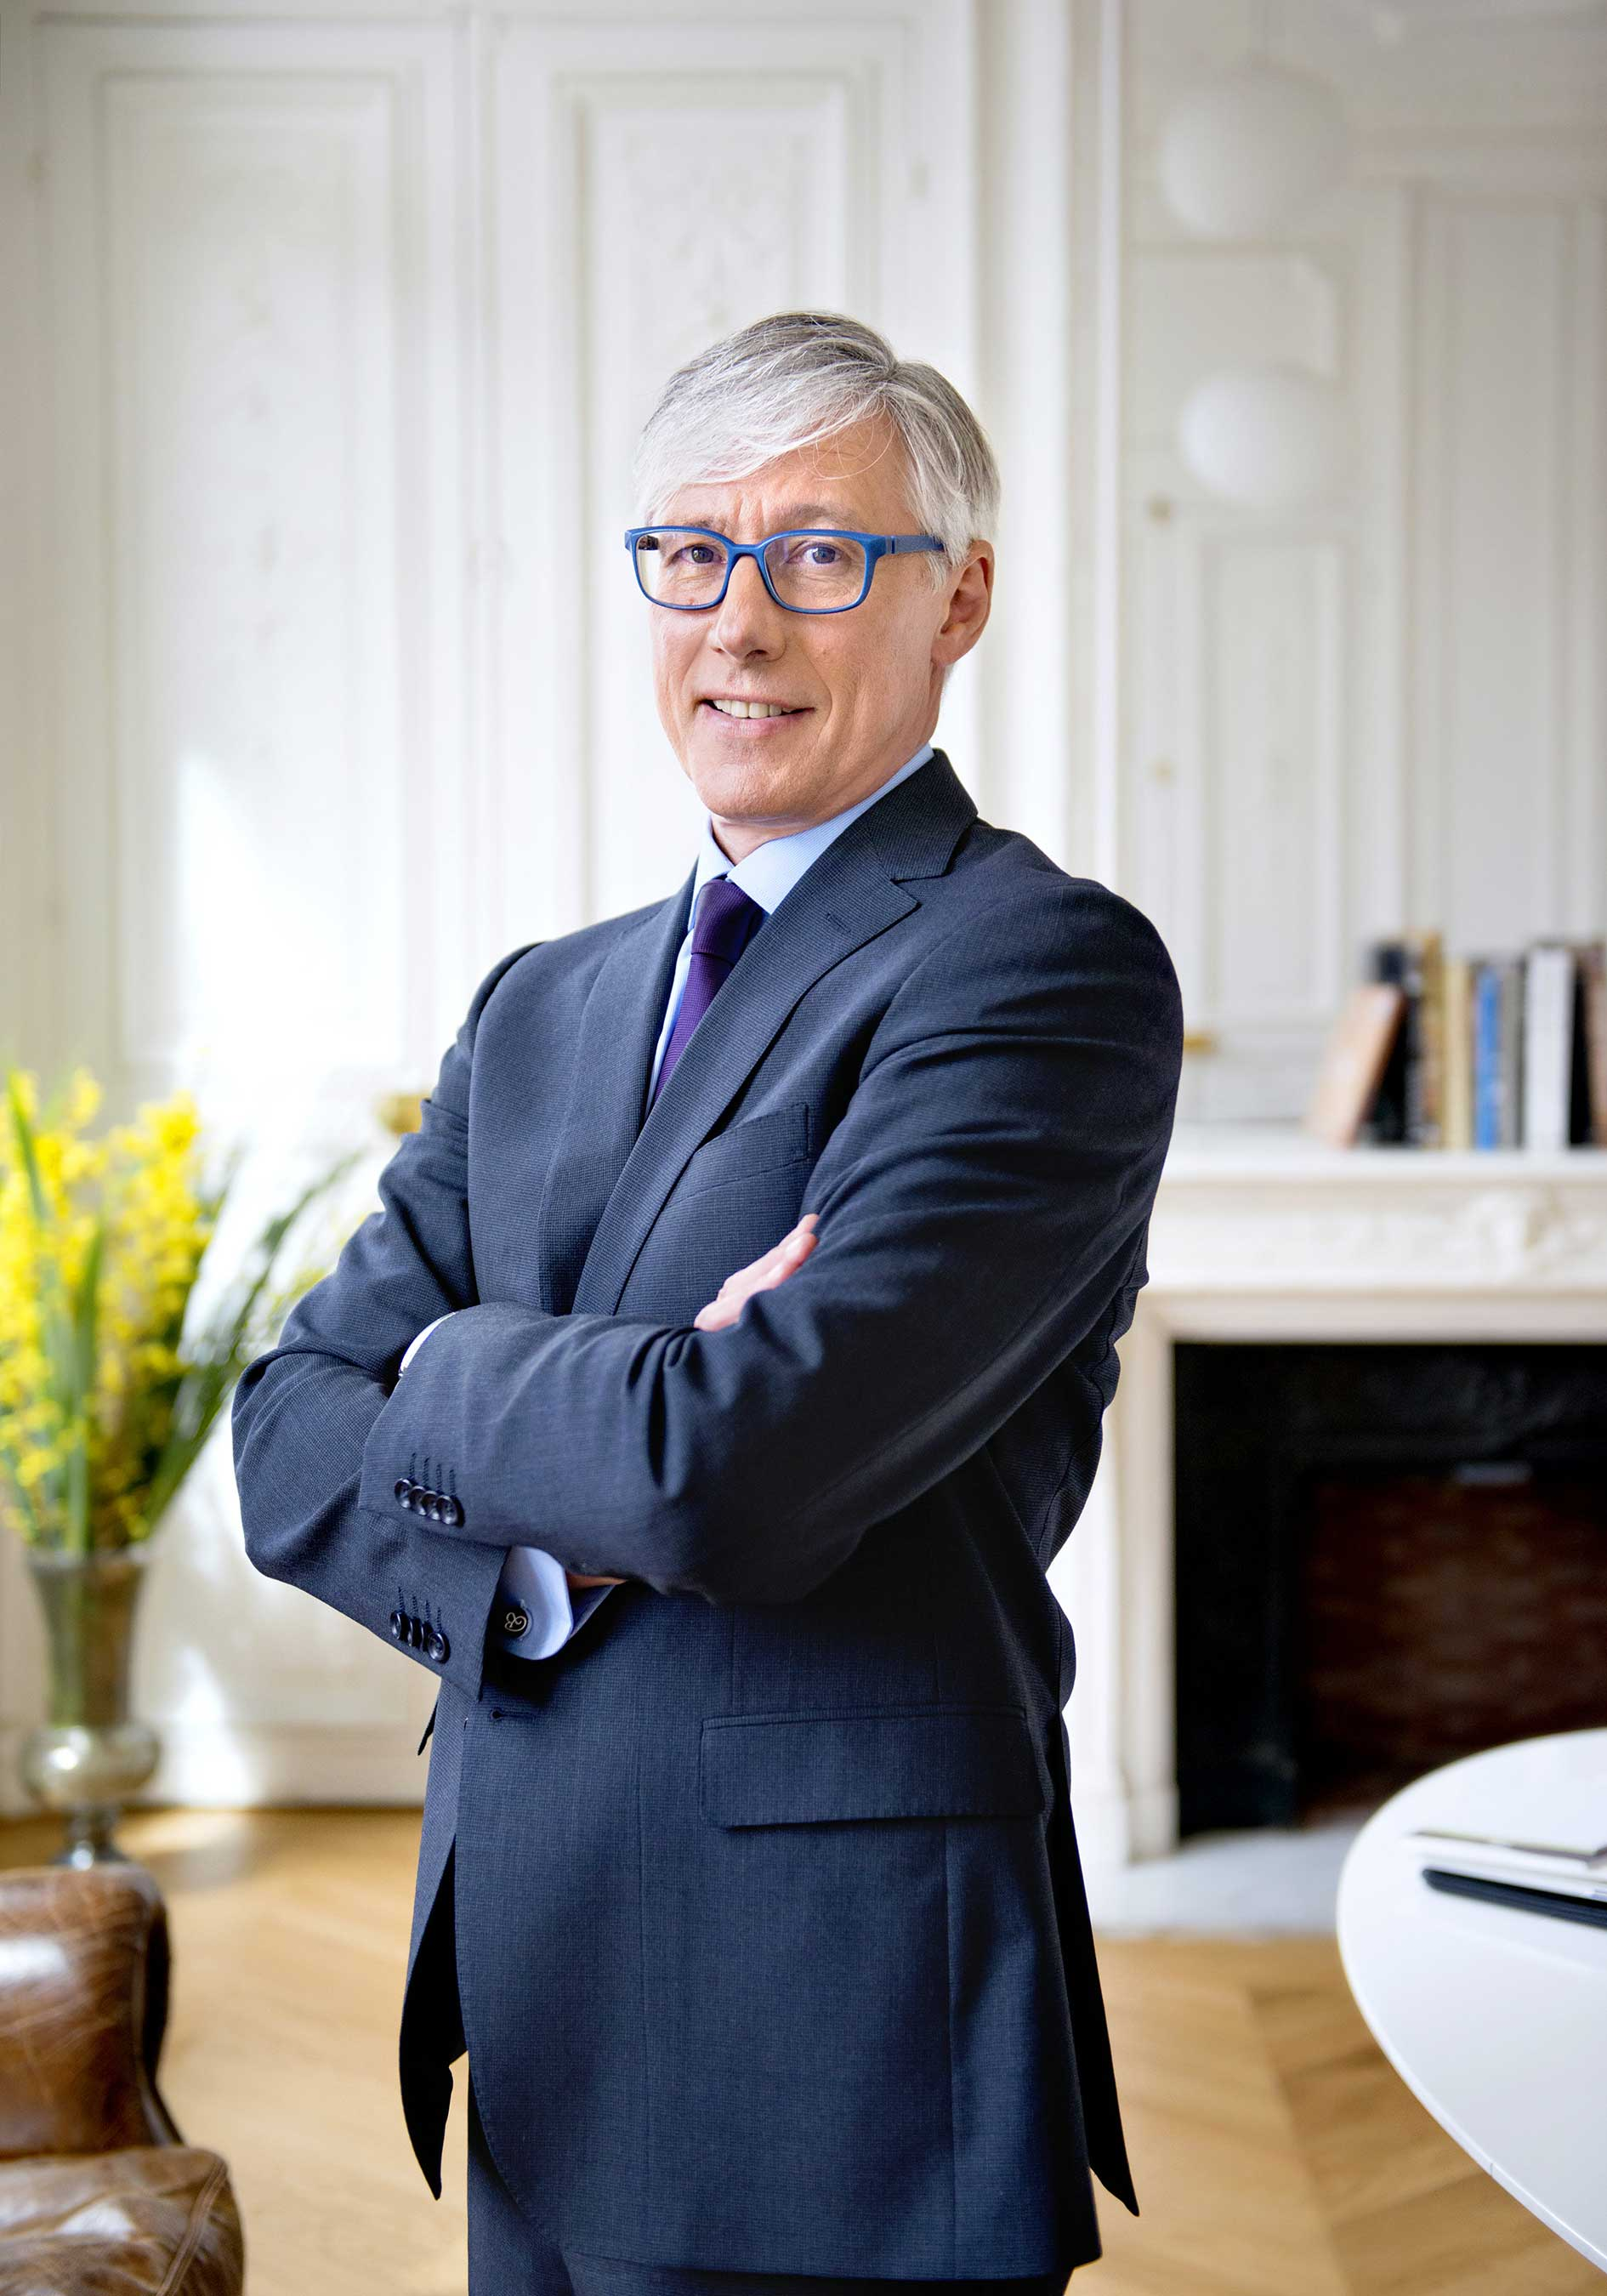 Olivier Brandicourt, Chief Executive Officer